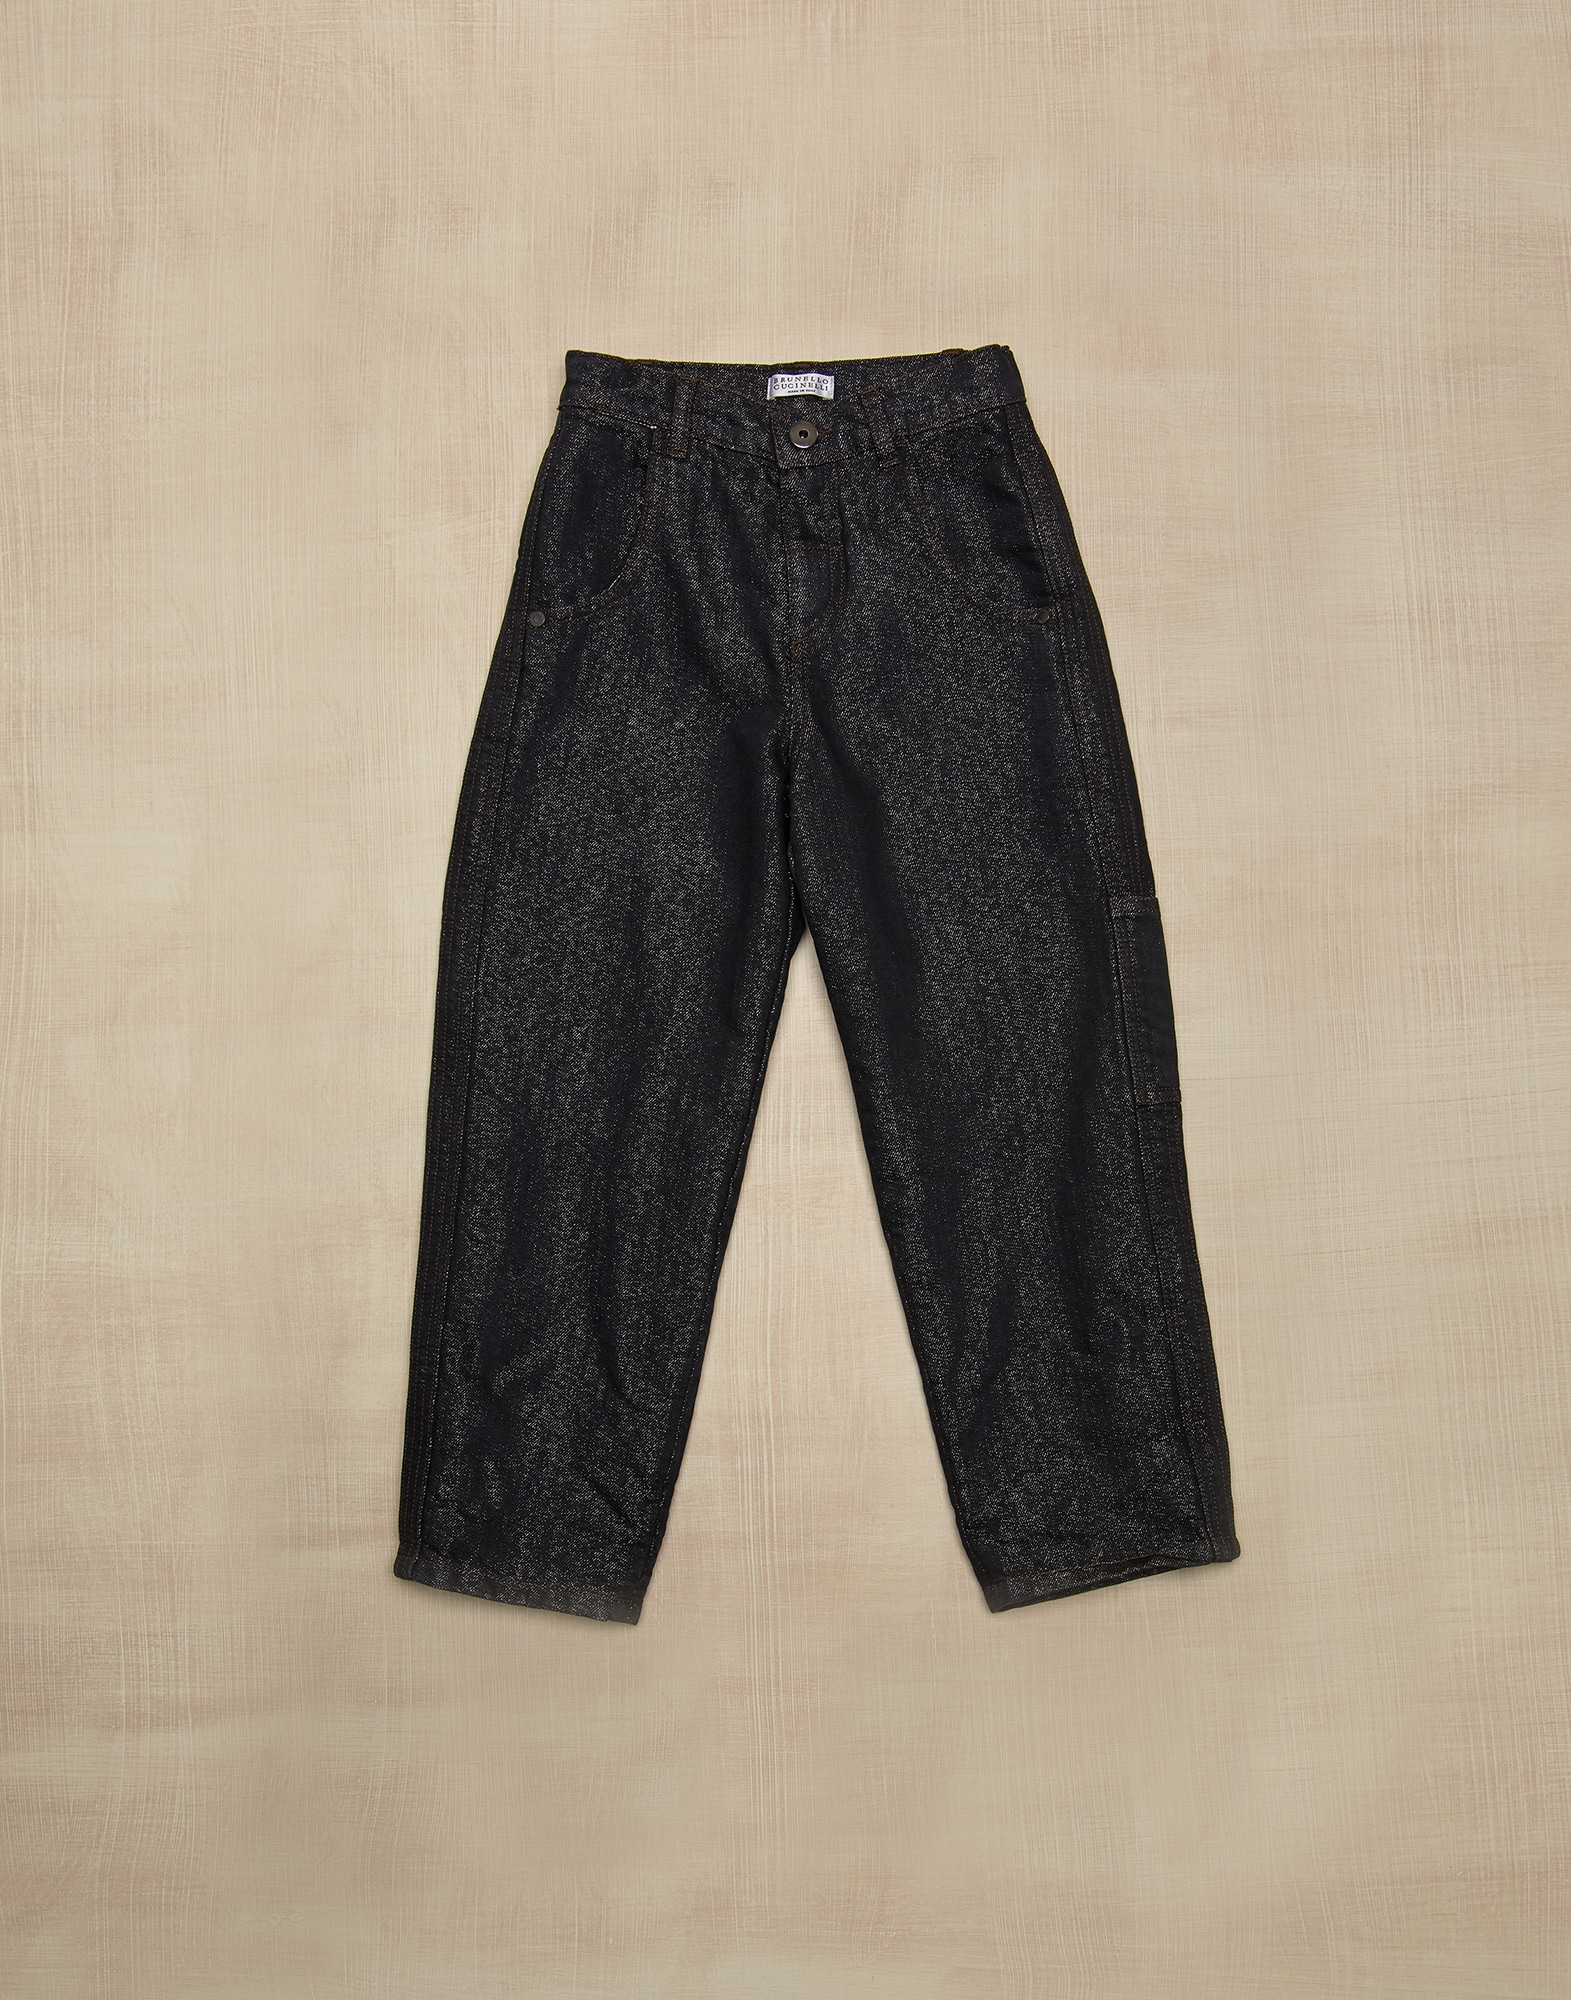 Denim Trousers Lignite Girl 0 - Brunello Cucinelli